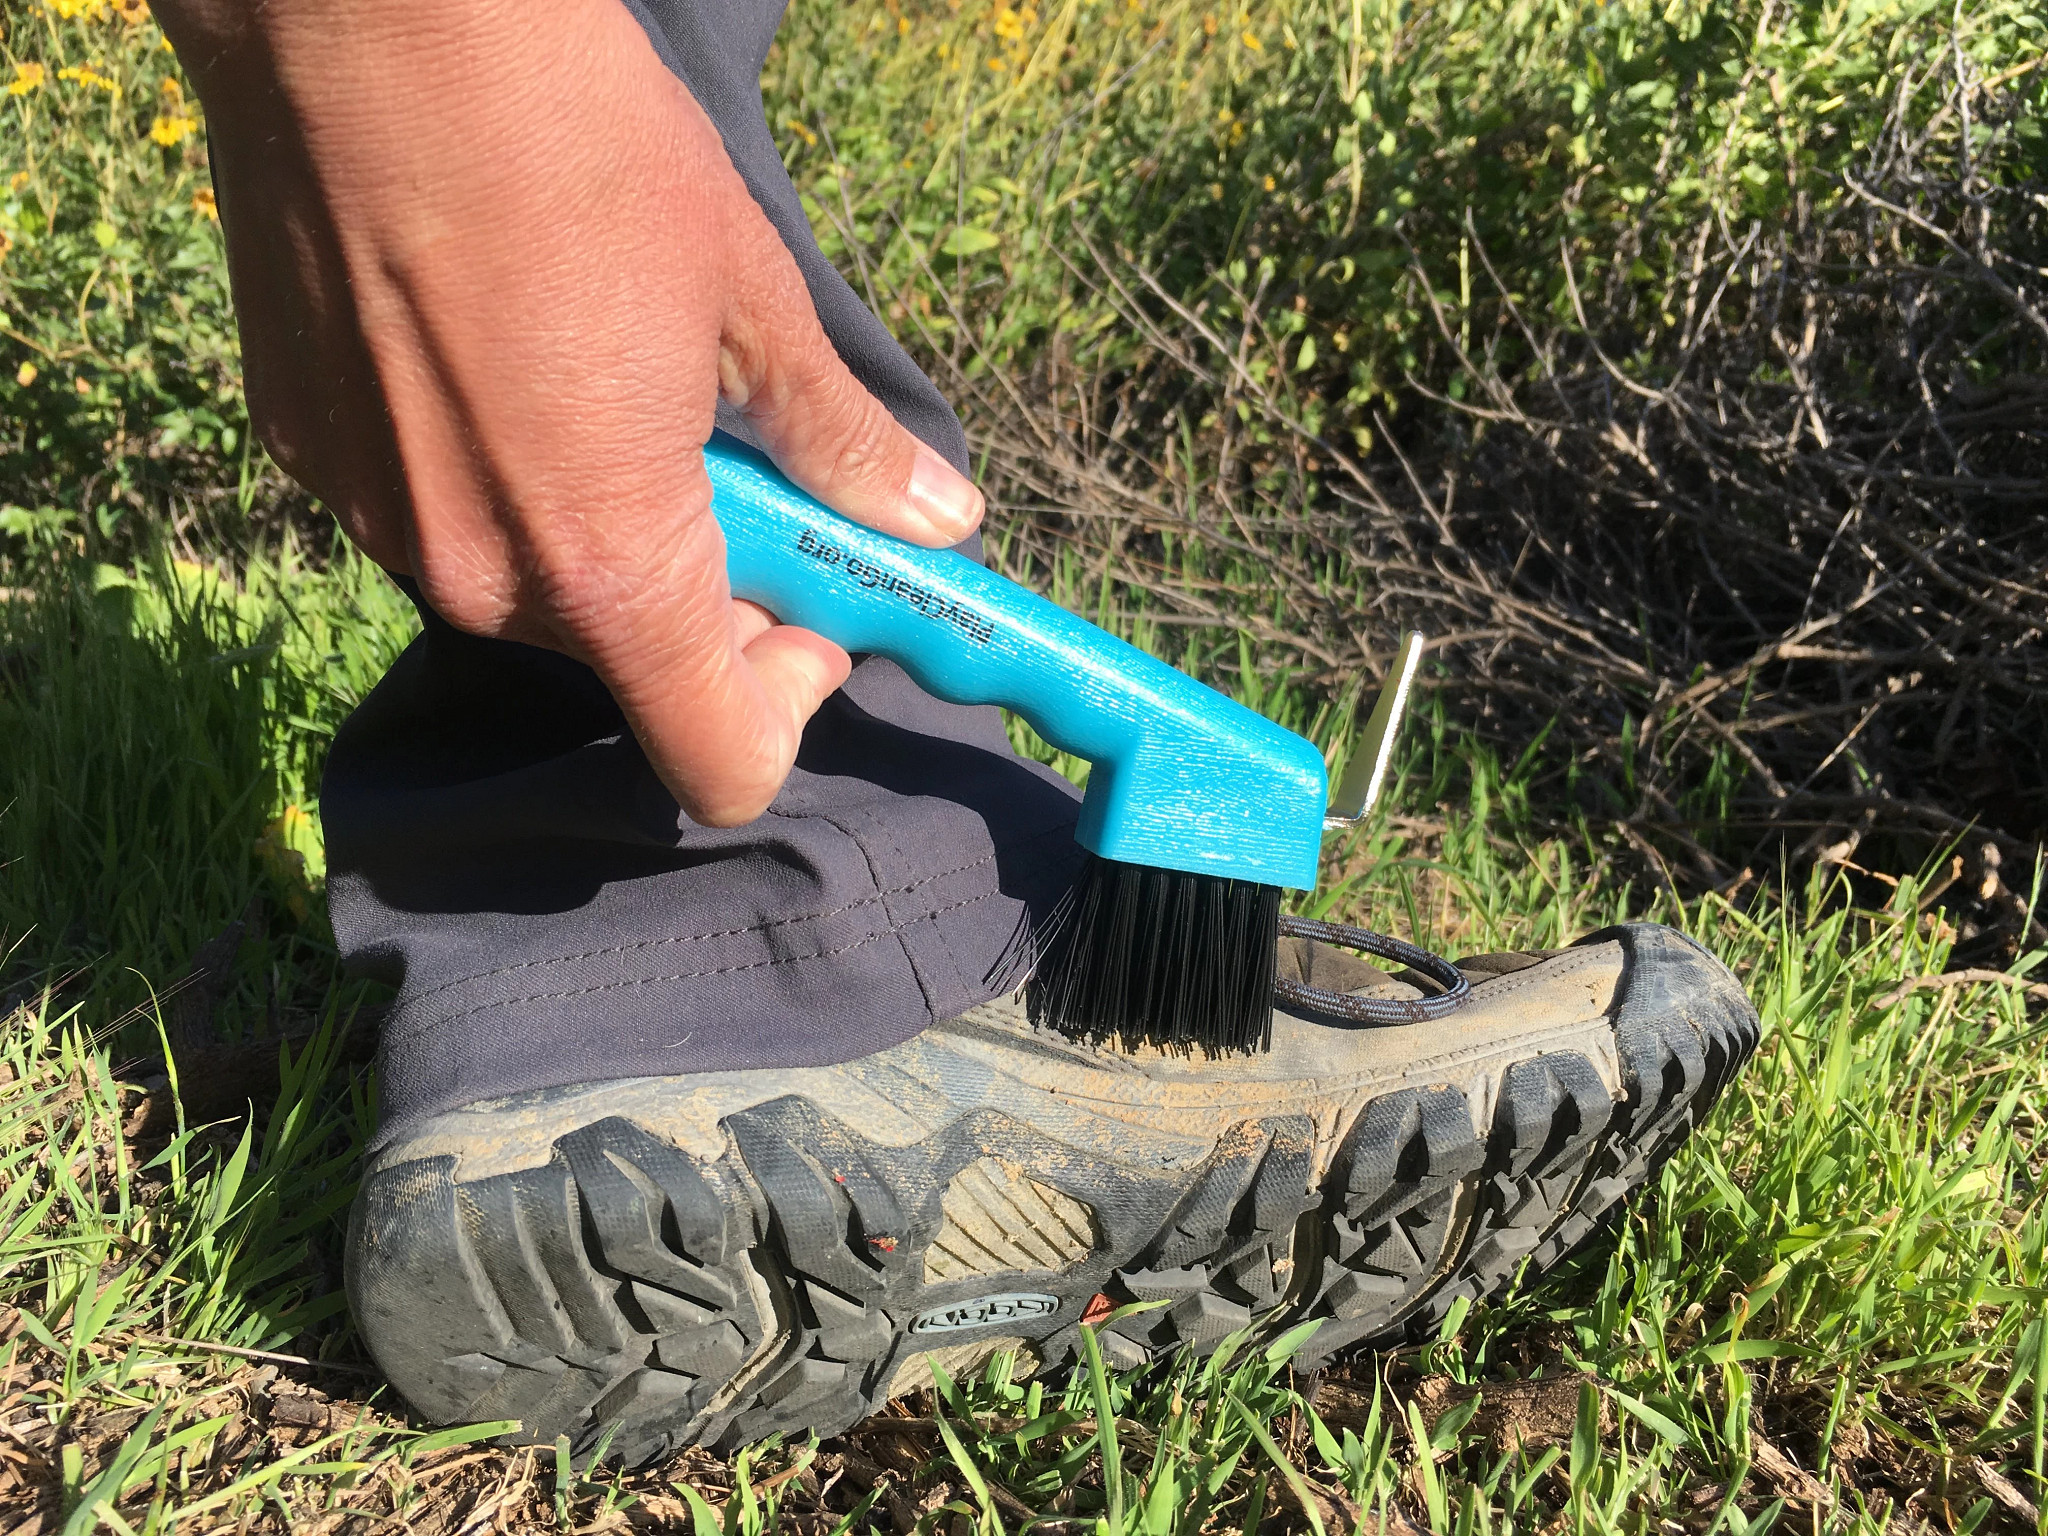 close up of hand scrubbing mud off boot with brush